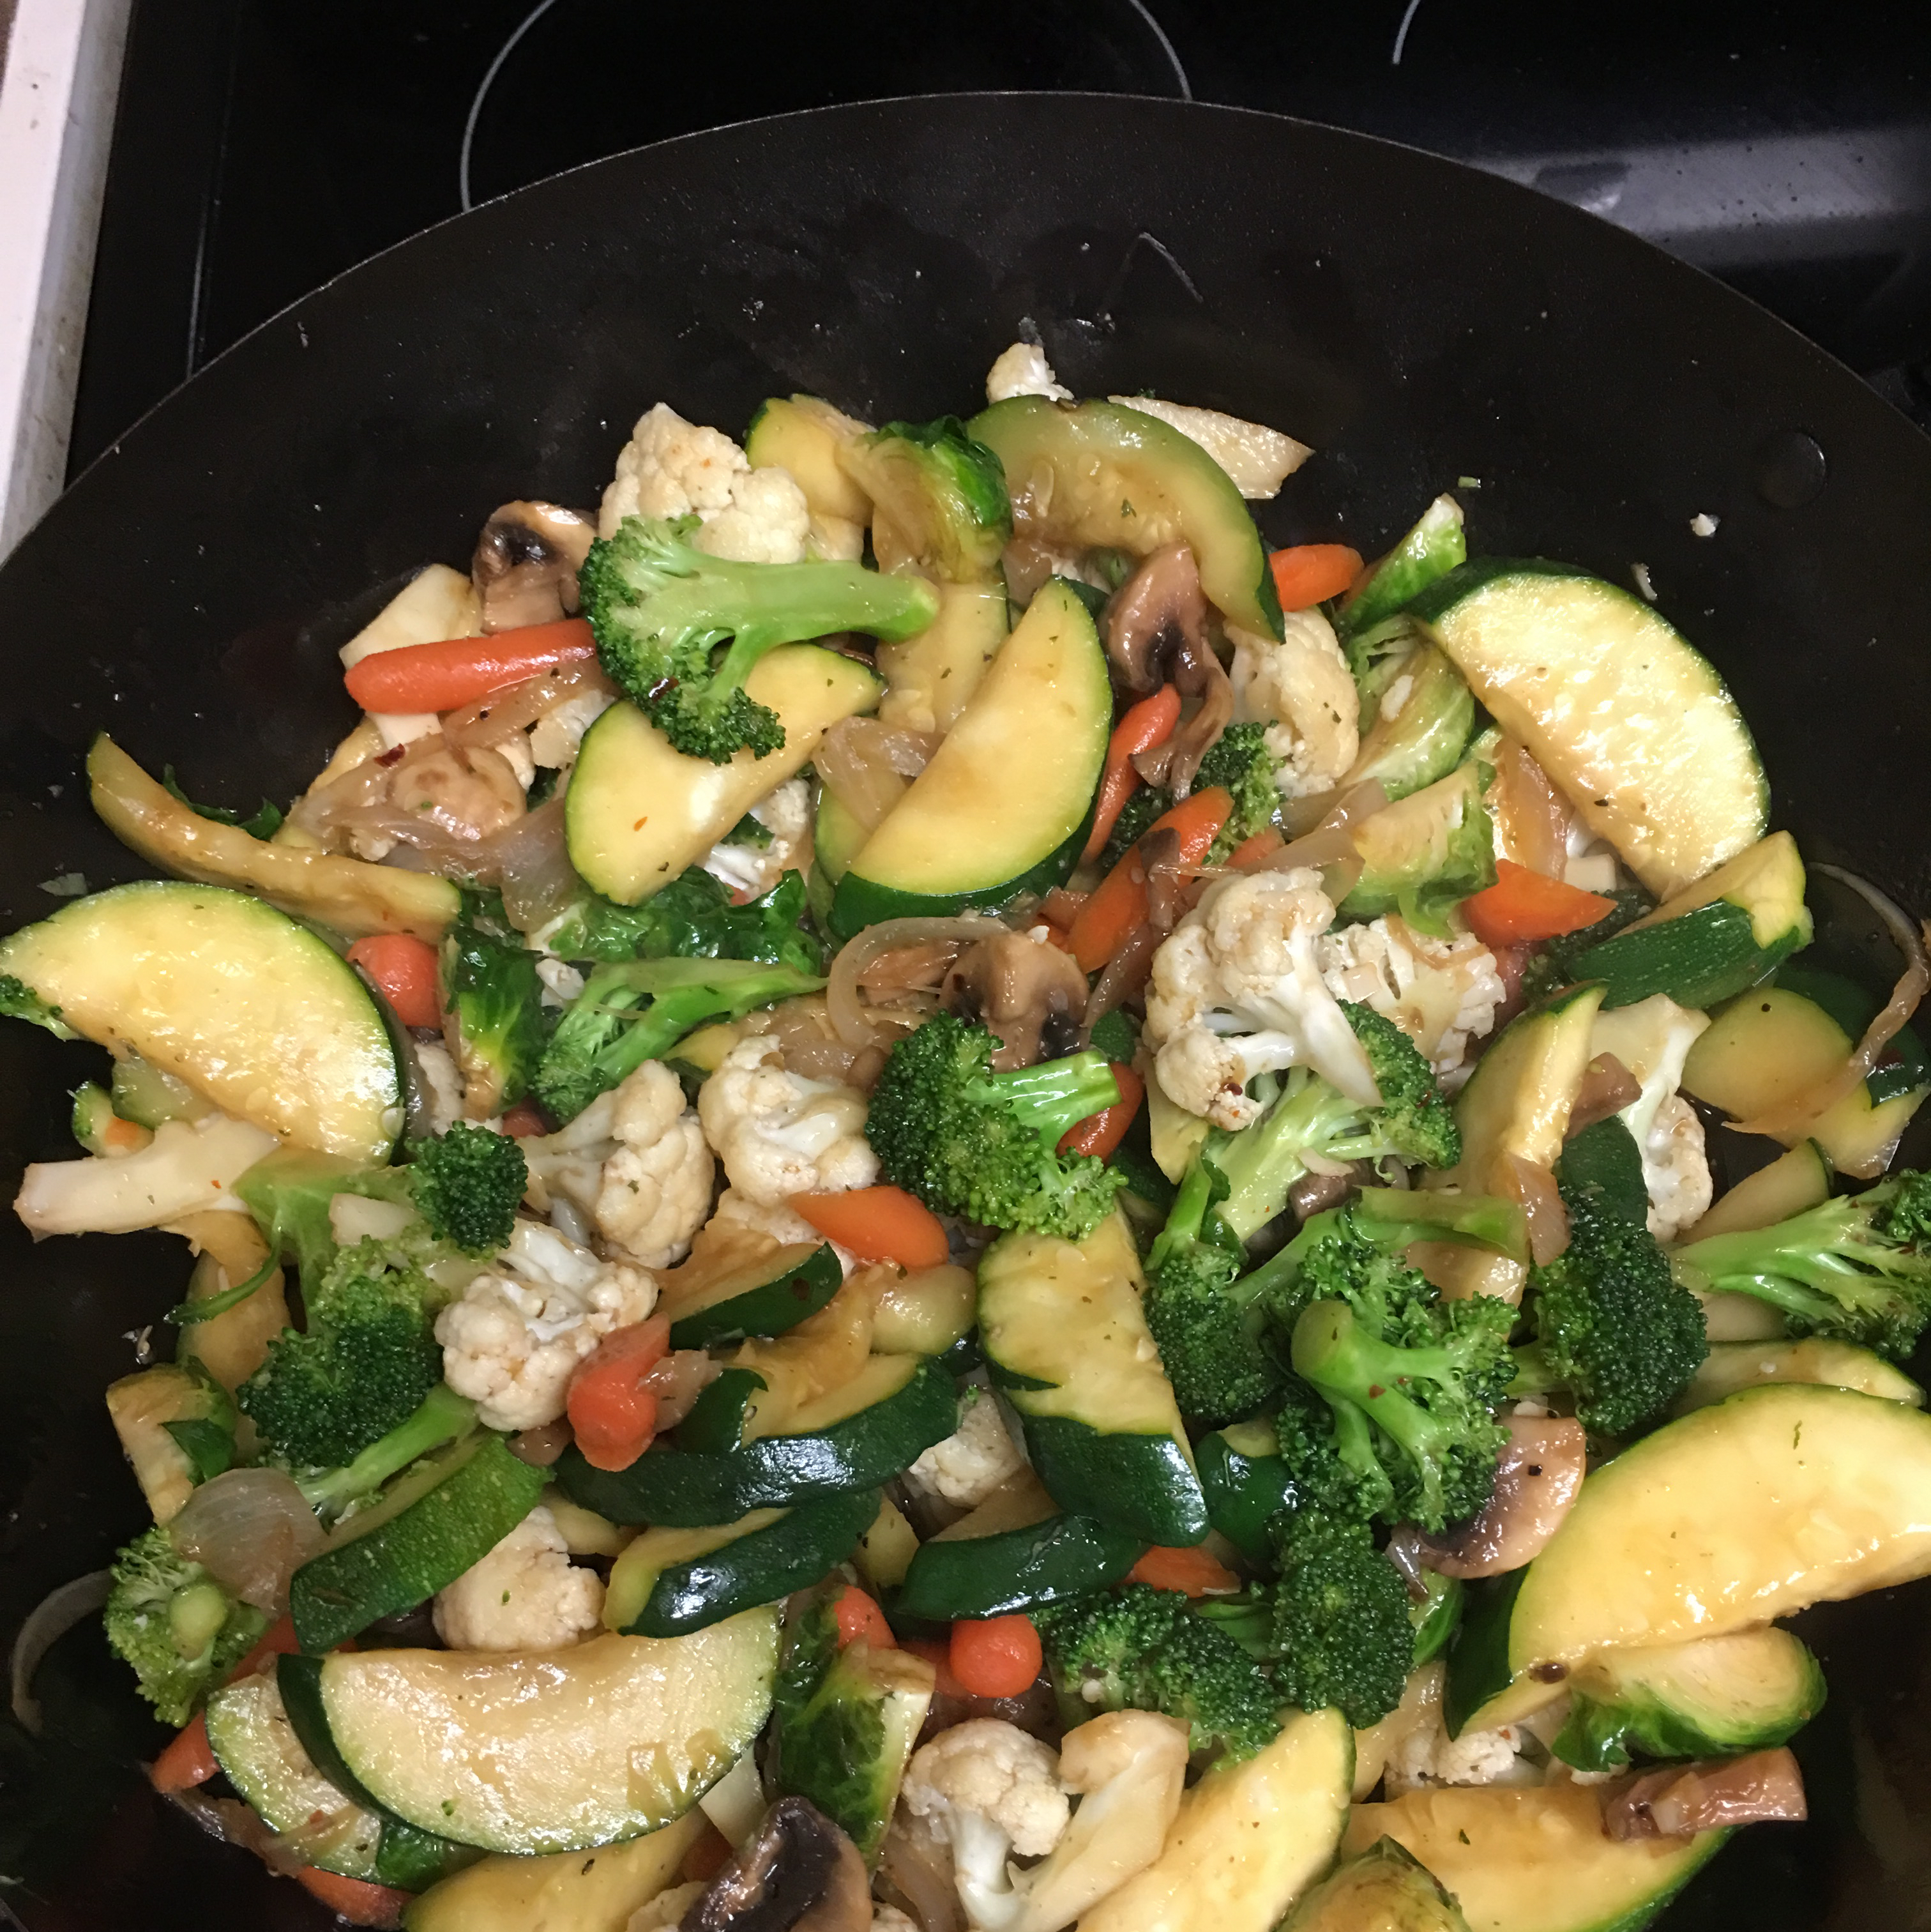 Zucchini and Soy Bean Stir Fry